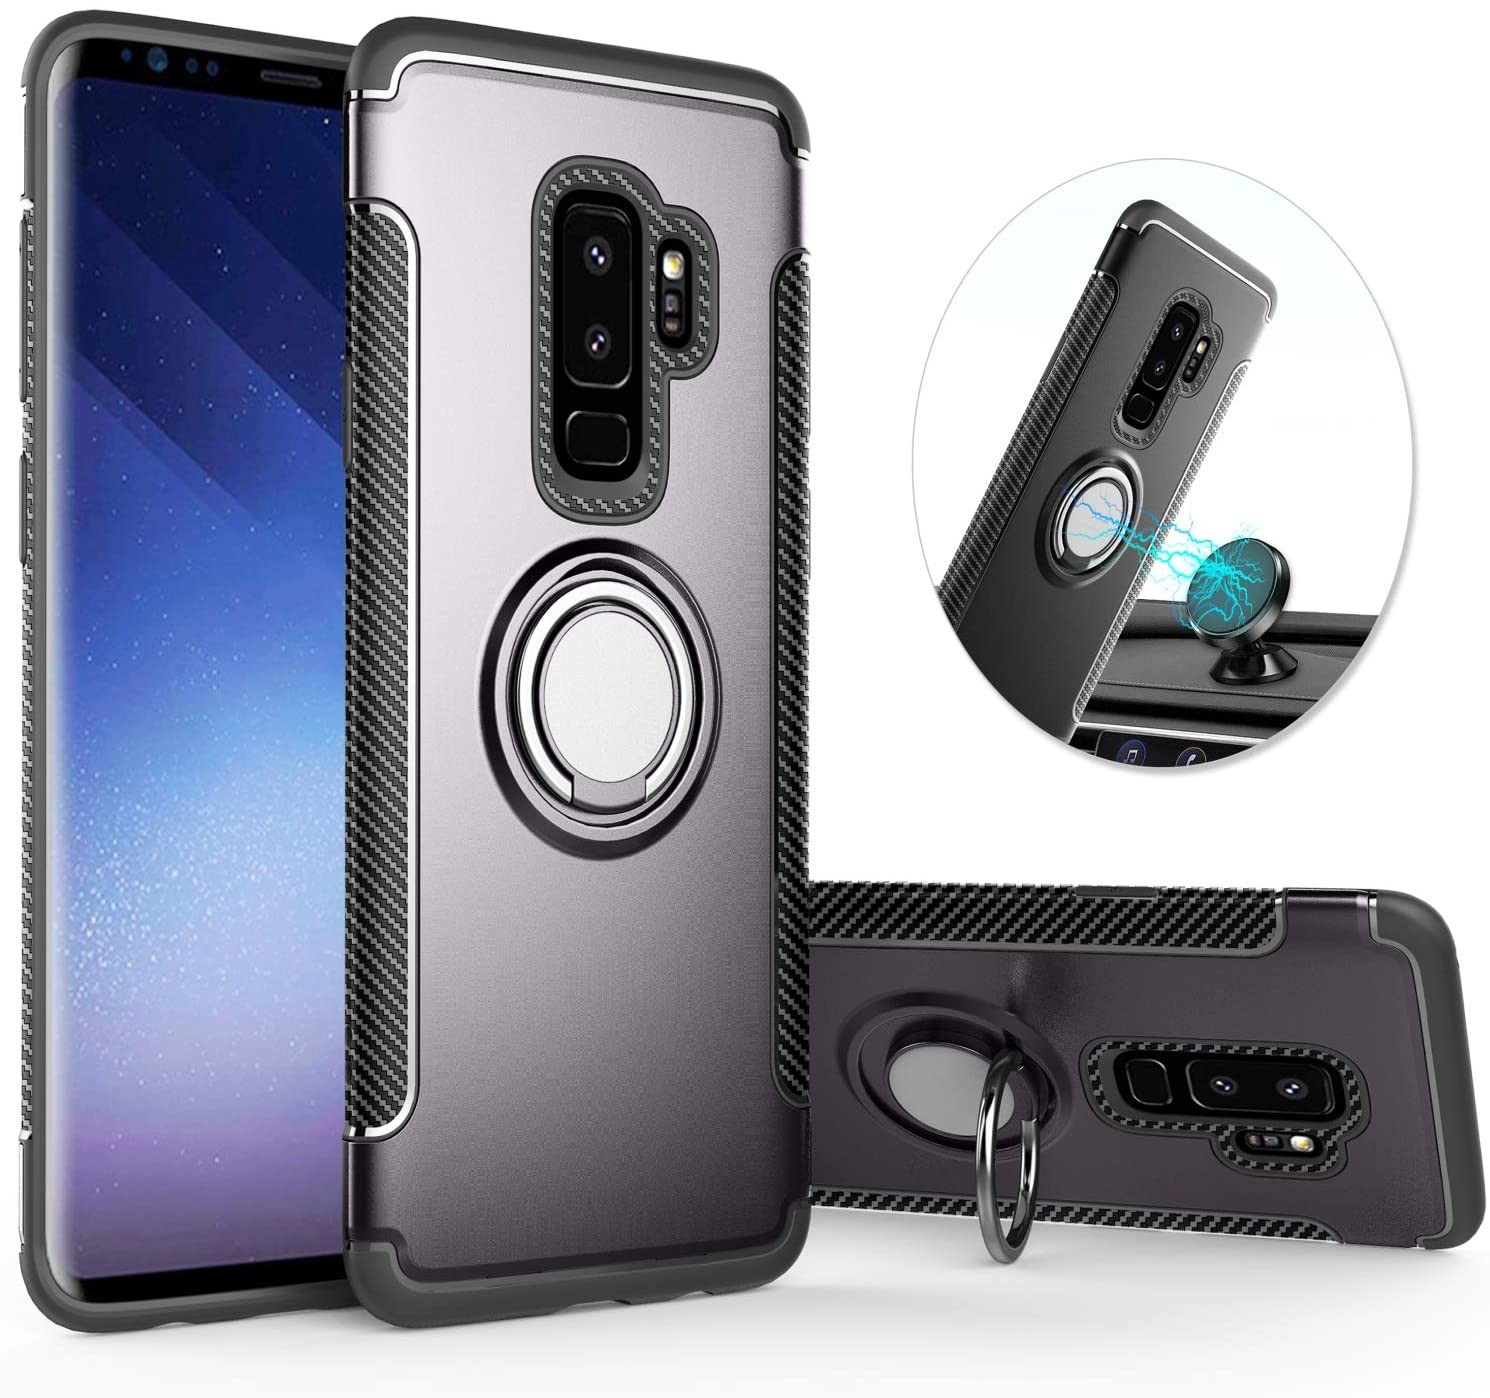 QSEEL for Samsung Galaxy S9 Plus Ring Armor Case, TPU+PC Hybrid Shockproof Back Cover with Built-in Magnetic Suction Holder, Sturdy Bumper Defender (Grey)